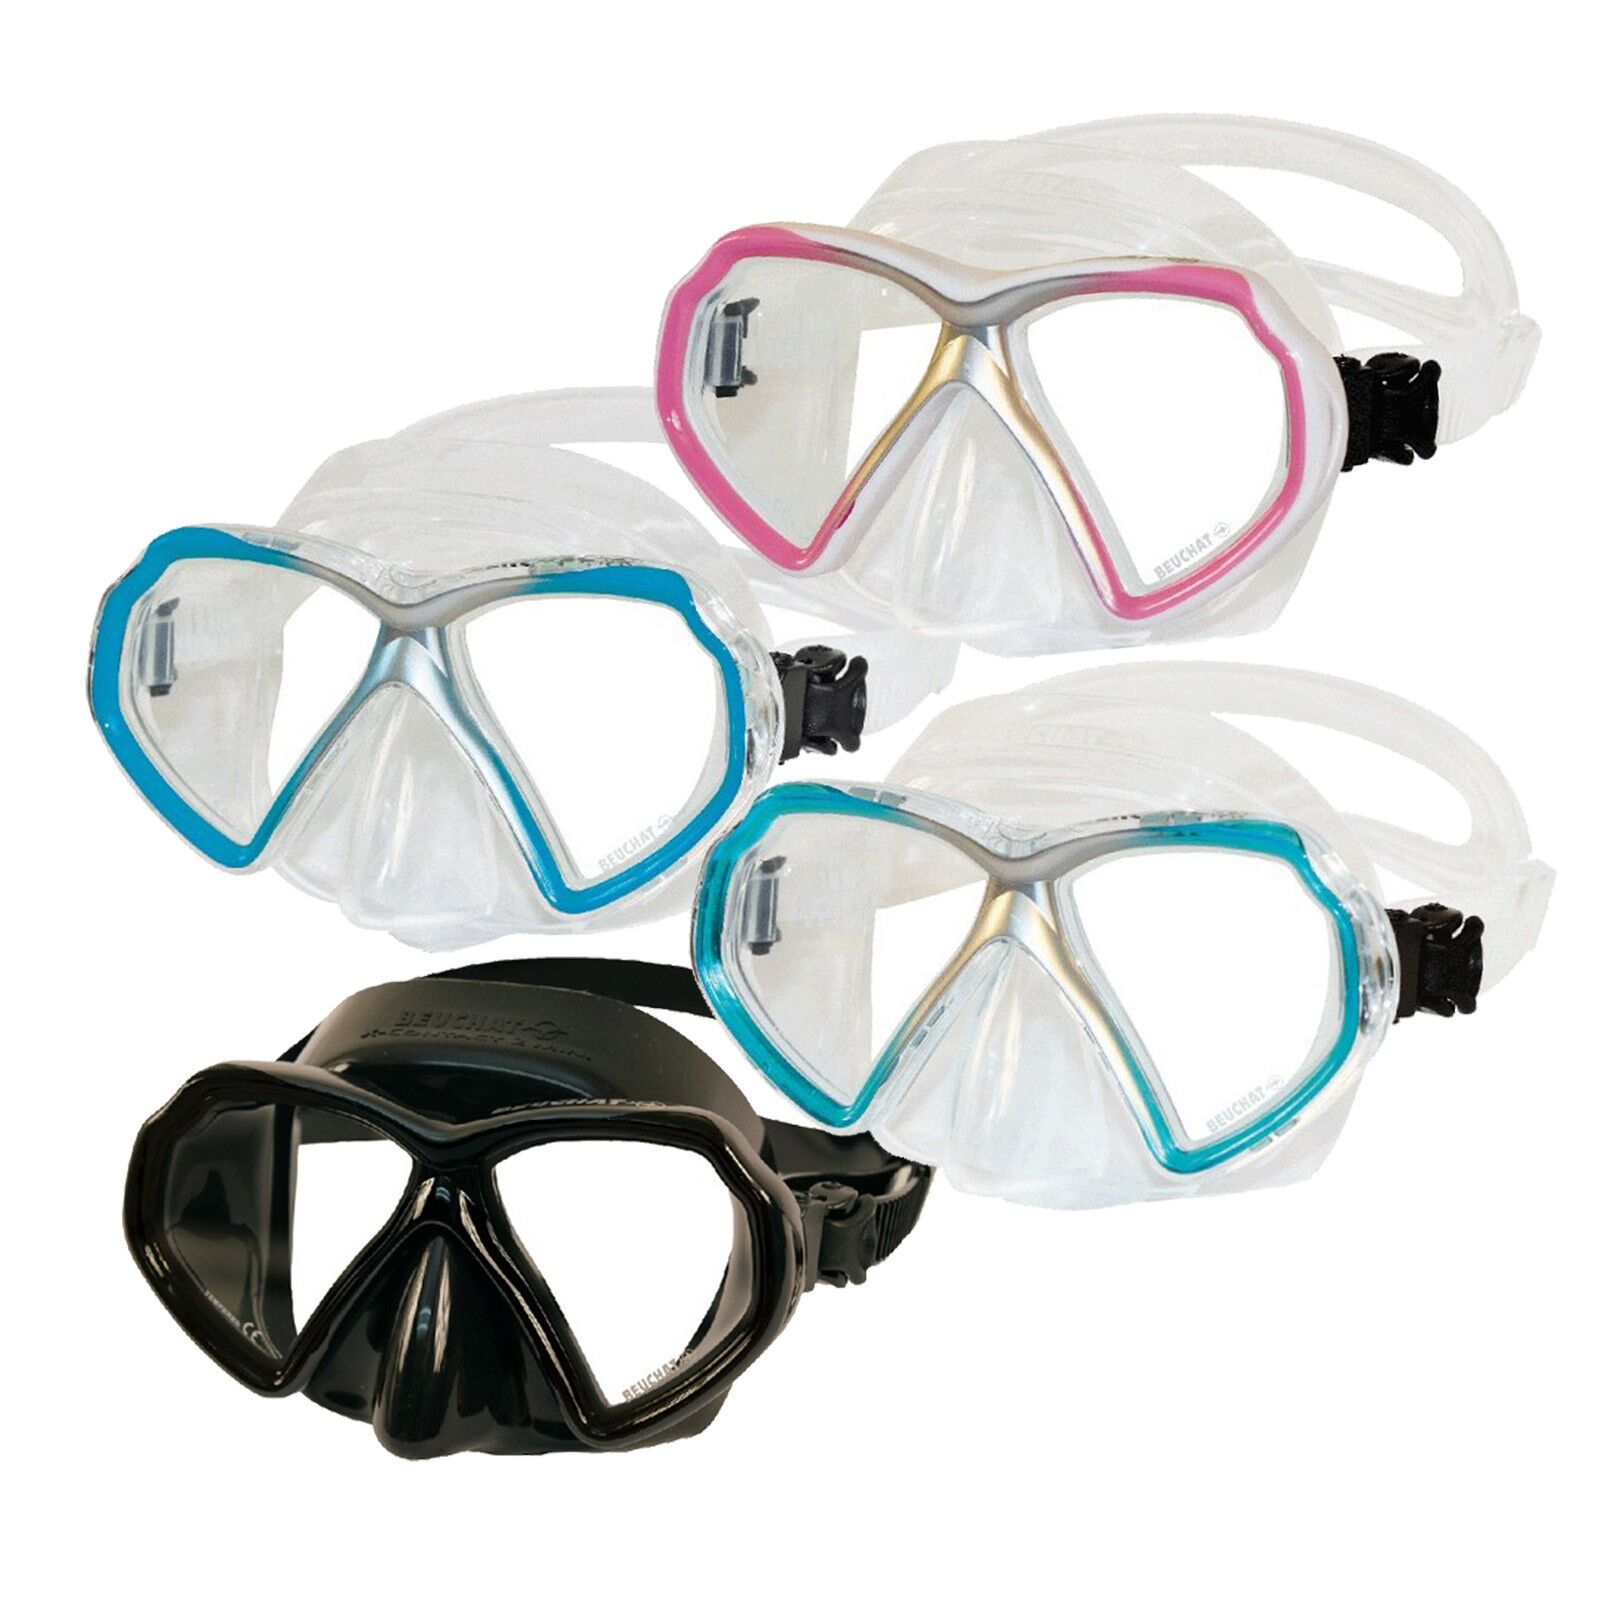 Beuchat X-Contact 2 Mini - 2glas Diving Mask